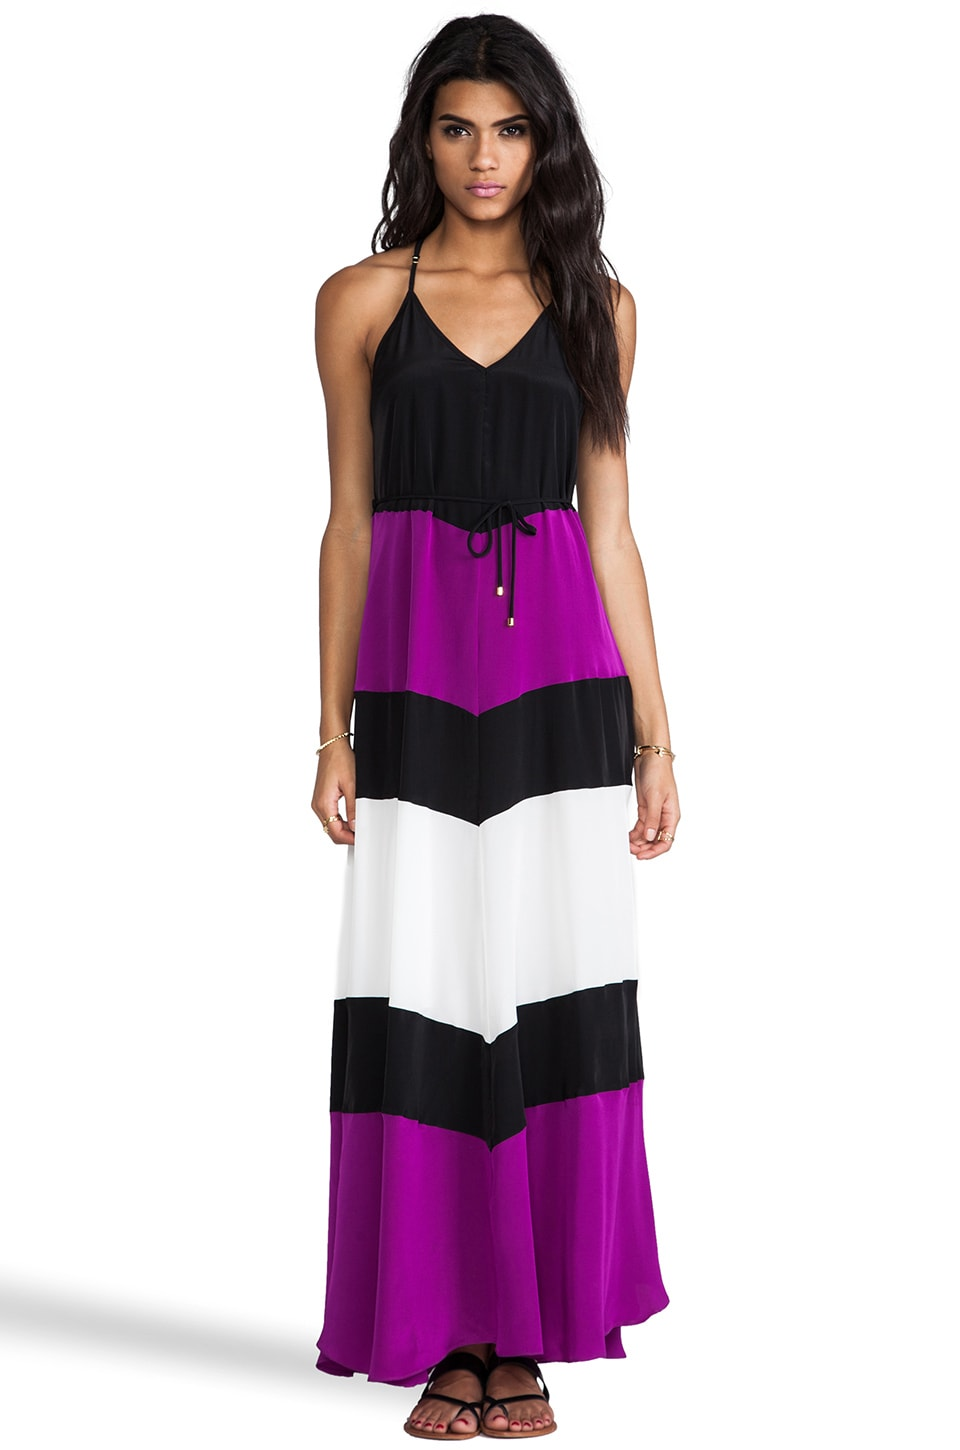 Karina Grimaldi EXCLUSIVE St. Barths Combo Maxi Dress in Purple